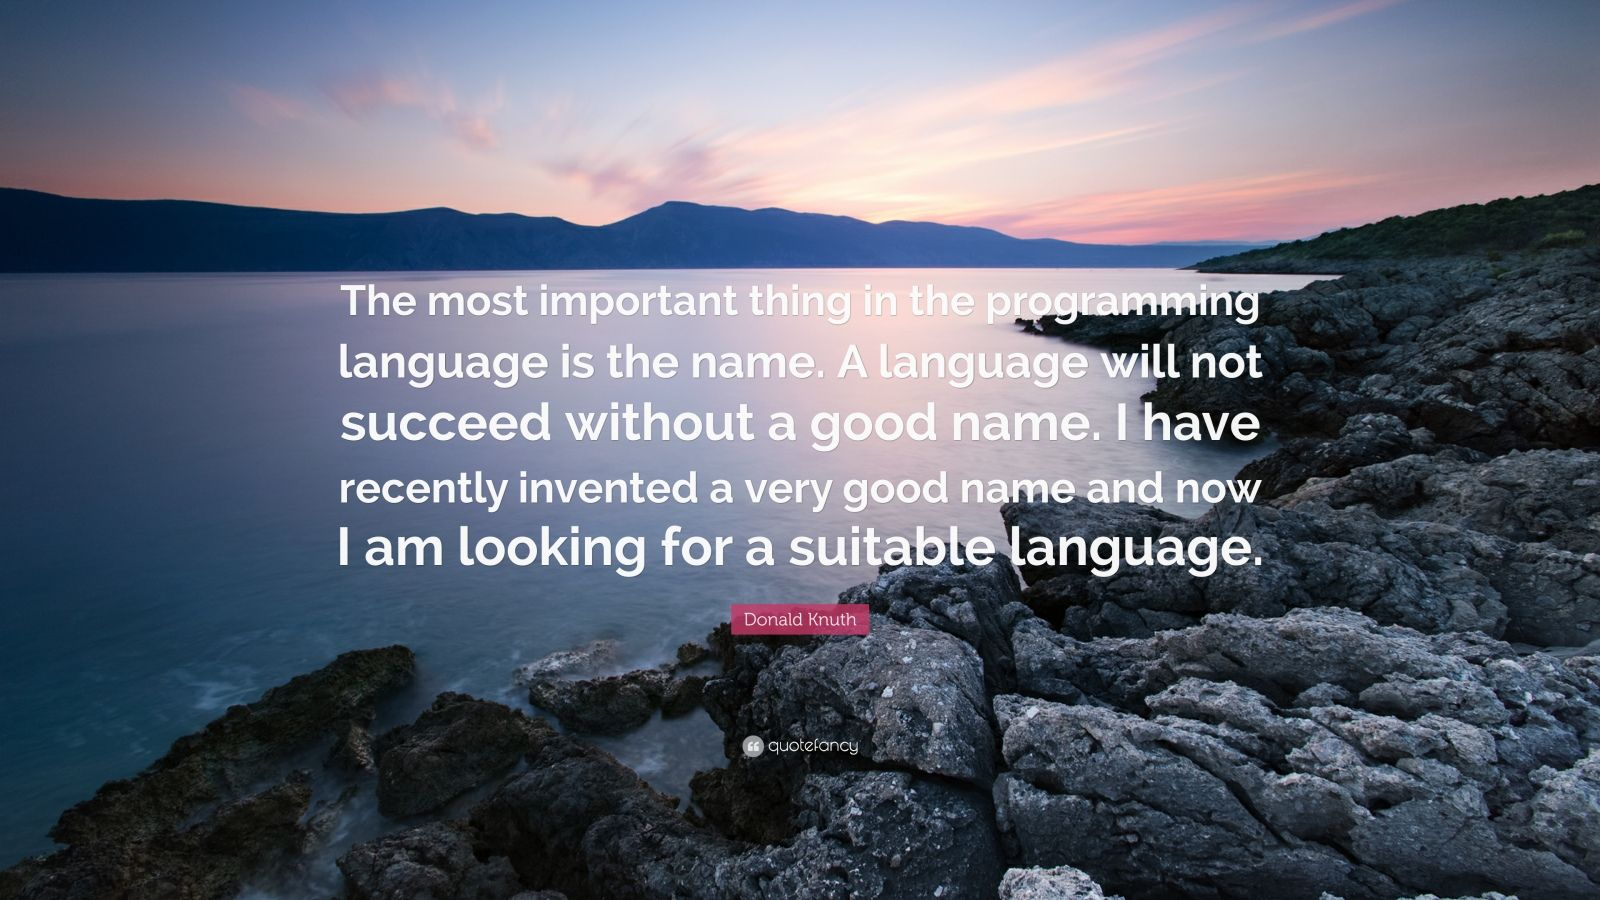 "Donald Knuth Quote: ""The most important thing in the programming language is the name. A language will not succeed without a good name. I have recently invented a very good name and now I am looking for a suitable language."""